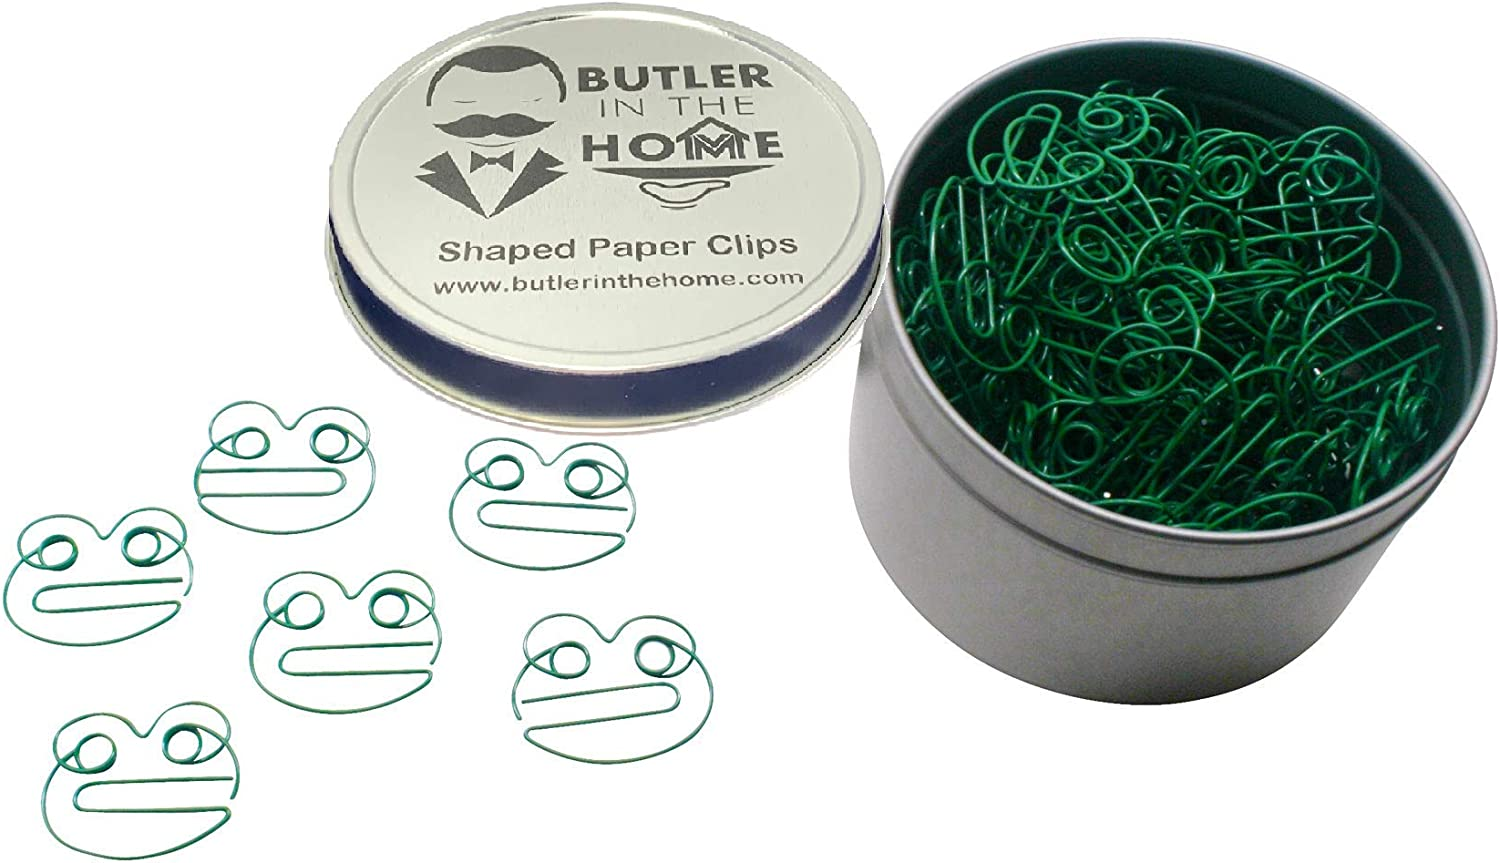 Butler in the Home 100 Count Frog Shaped Paper Clips Great for Paper Clip Collectors or Office Gift - Comes in Round Tin with Lid and Gift Box (Green)